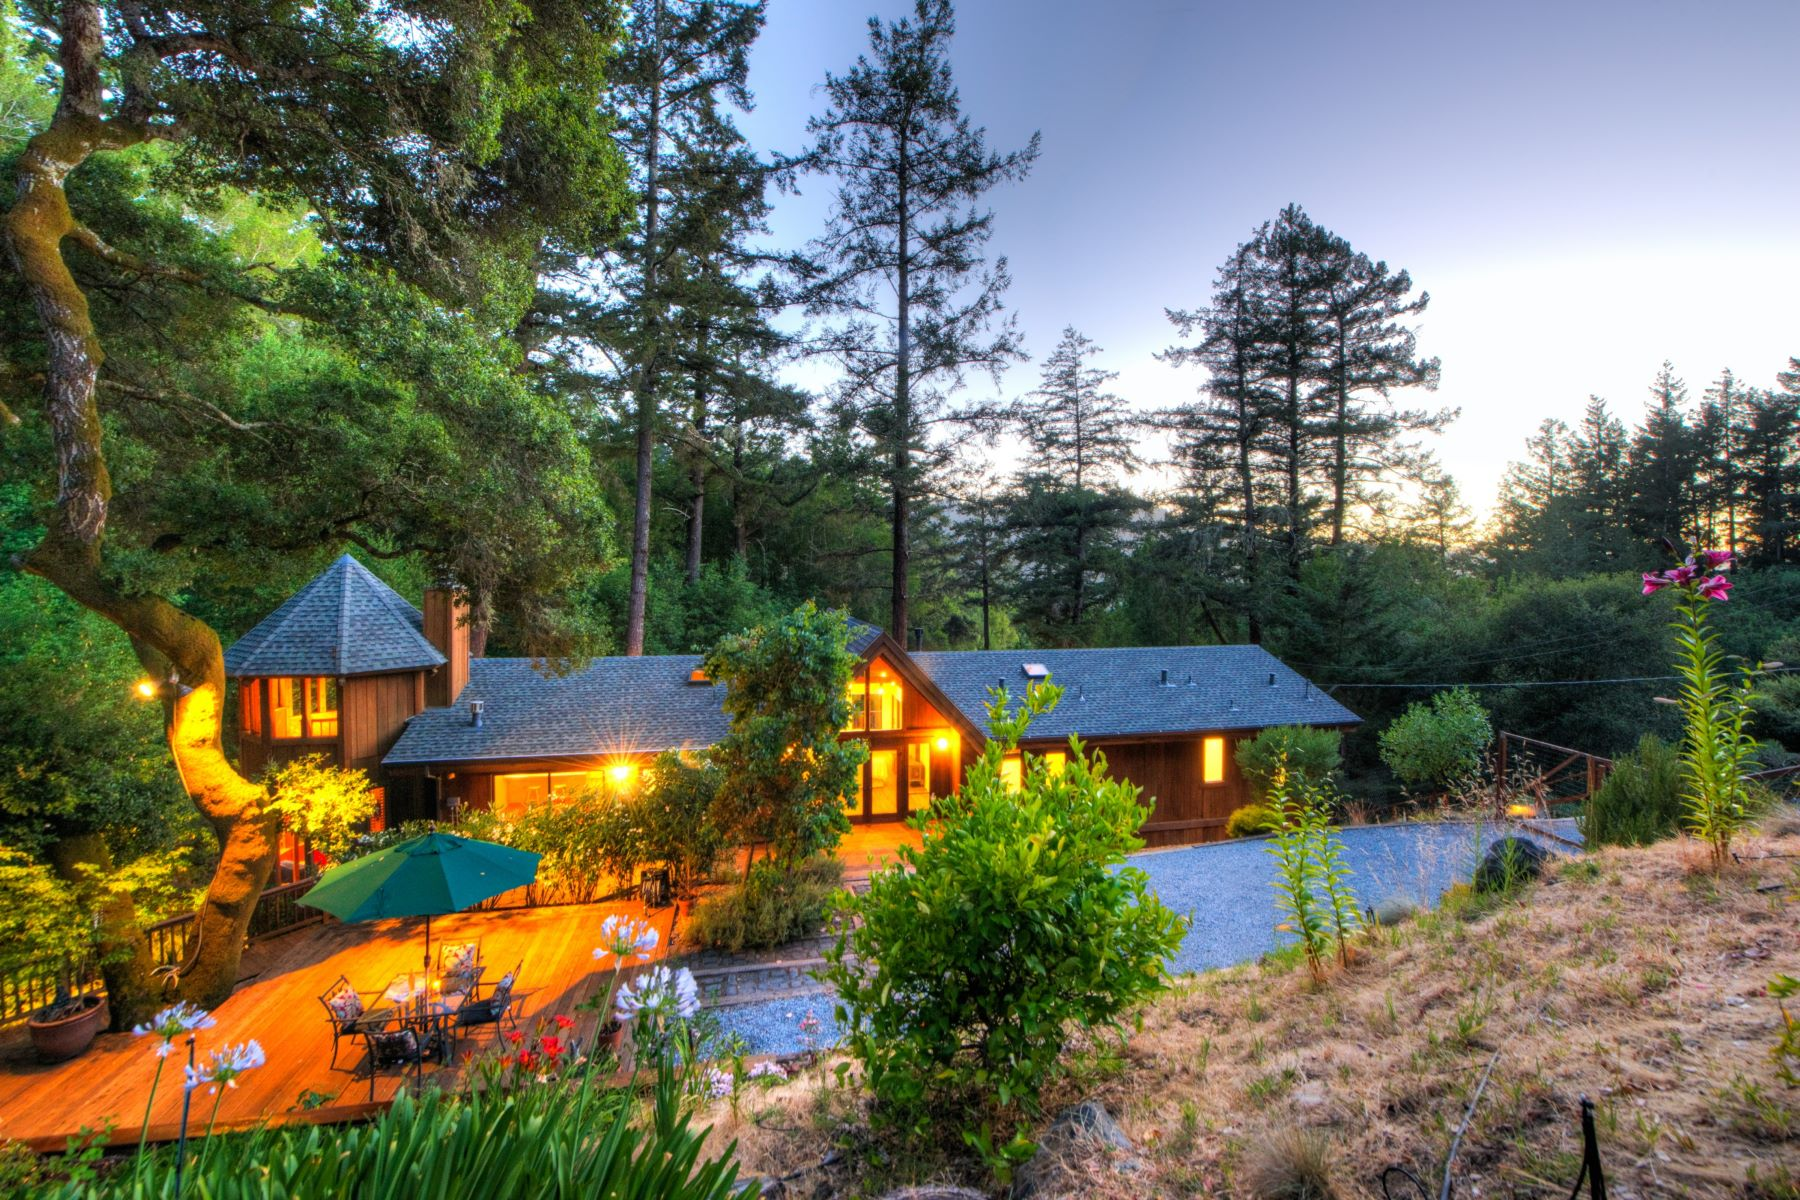 Single Family Home for Sale at Magical Setting on 1.49 Acres 78 Pine Avenue Woodacre, California 94973 United States